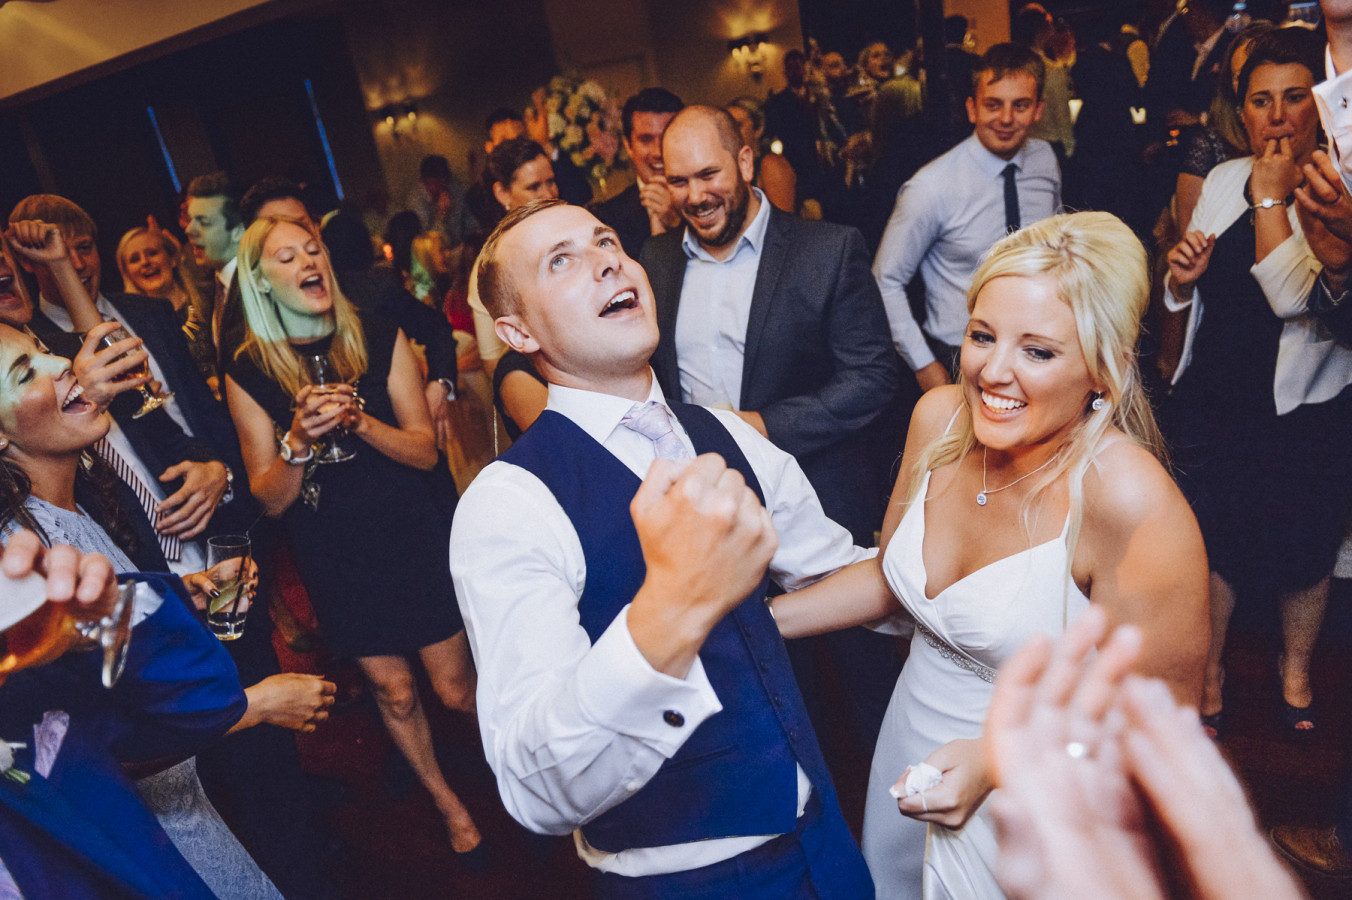 wedding photojournalist - tell your story with weddings by luke